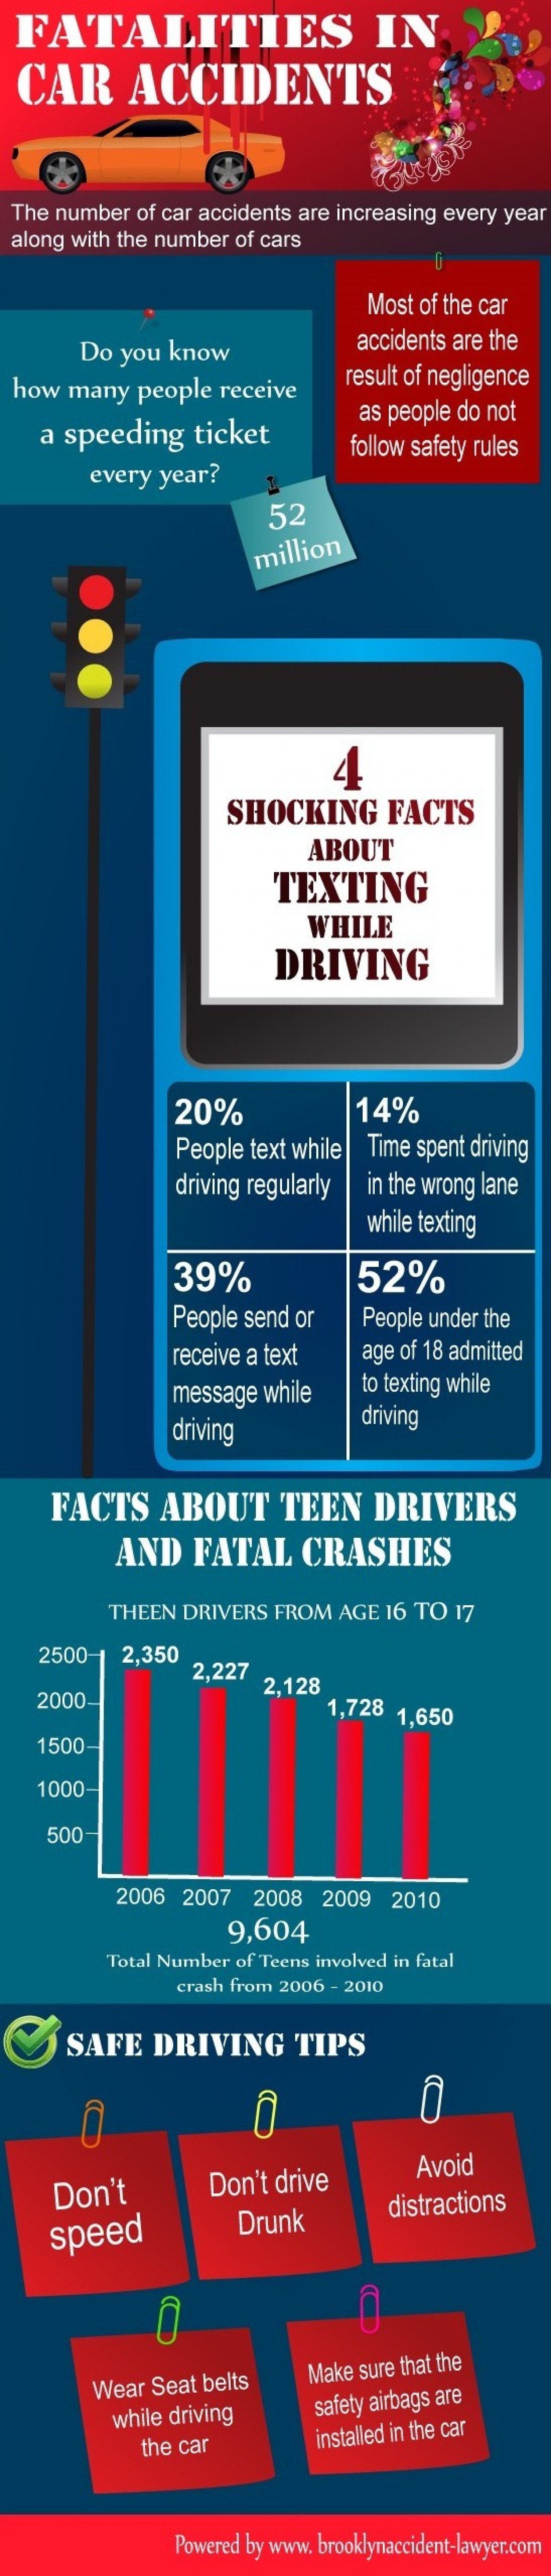 quit texting while driving and over speeding